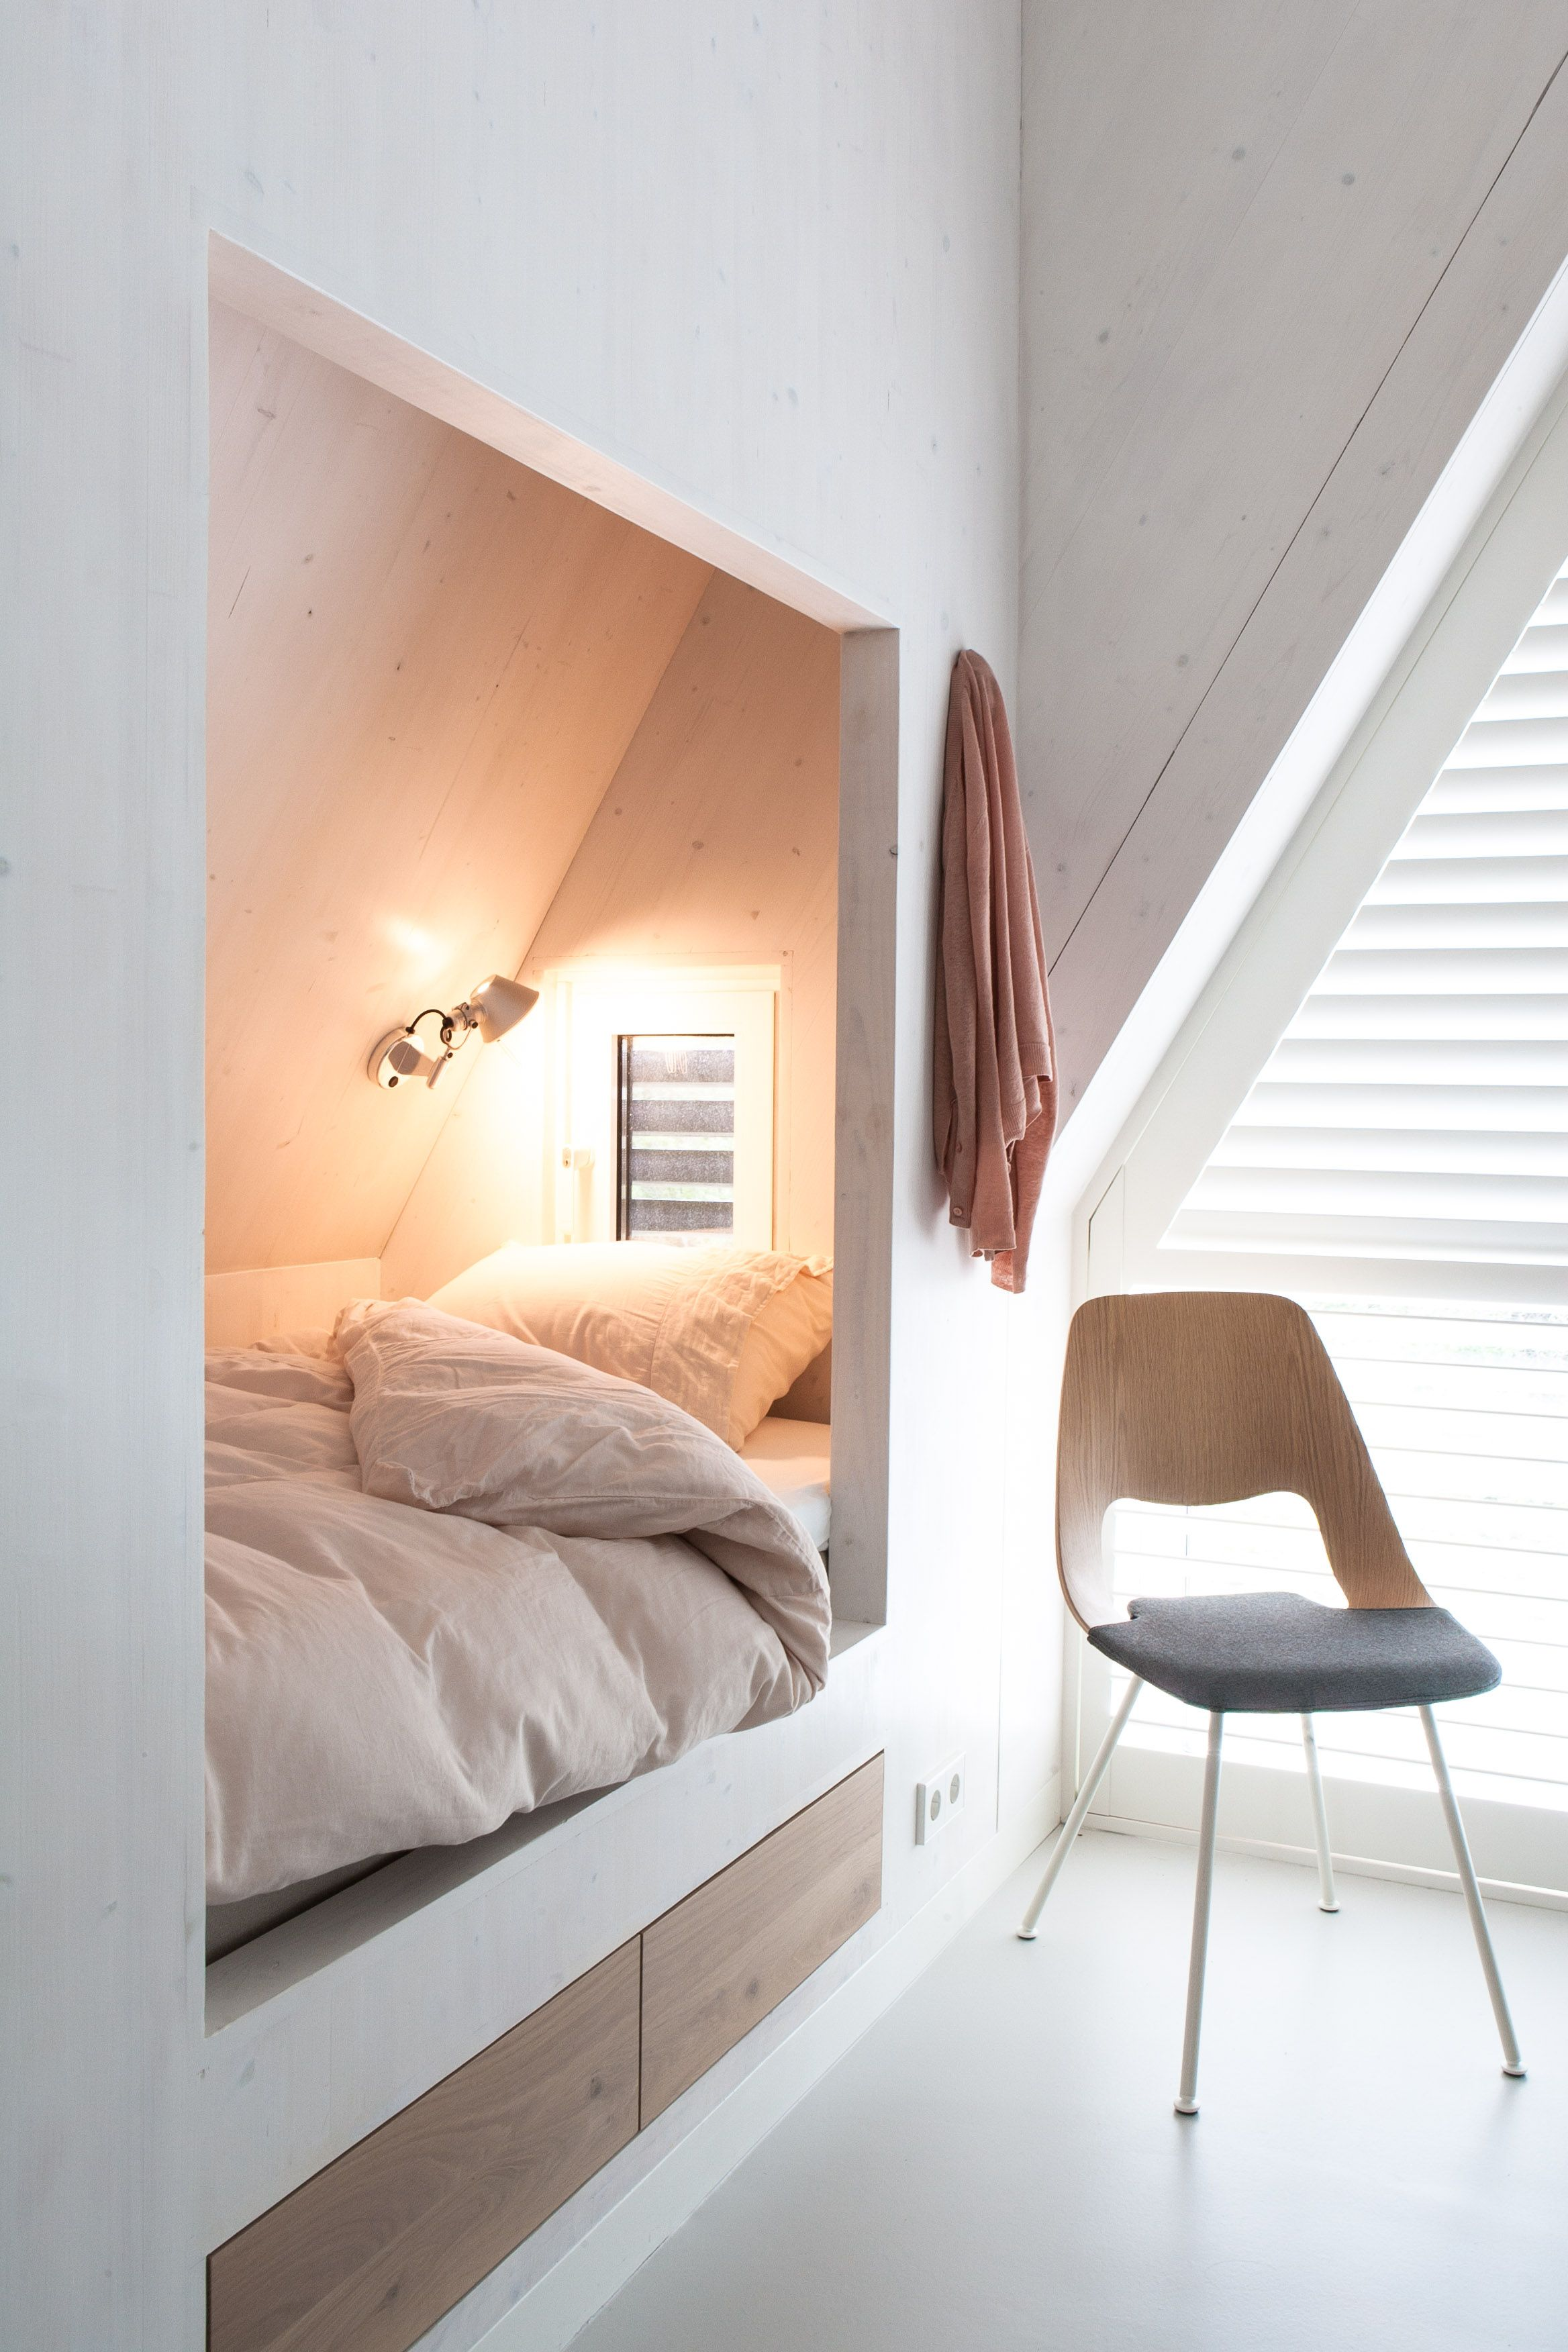 Interieur Plus - Waddeneiland | BEDROOMS | Pinterest - Interieur ...